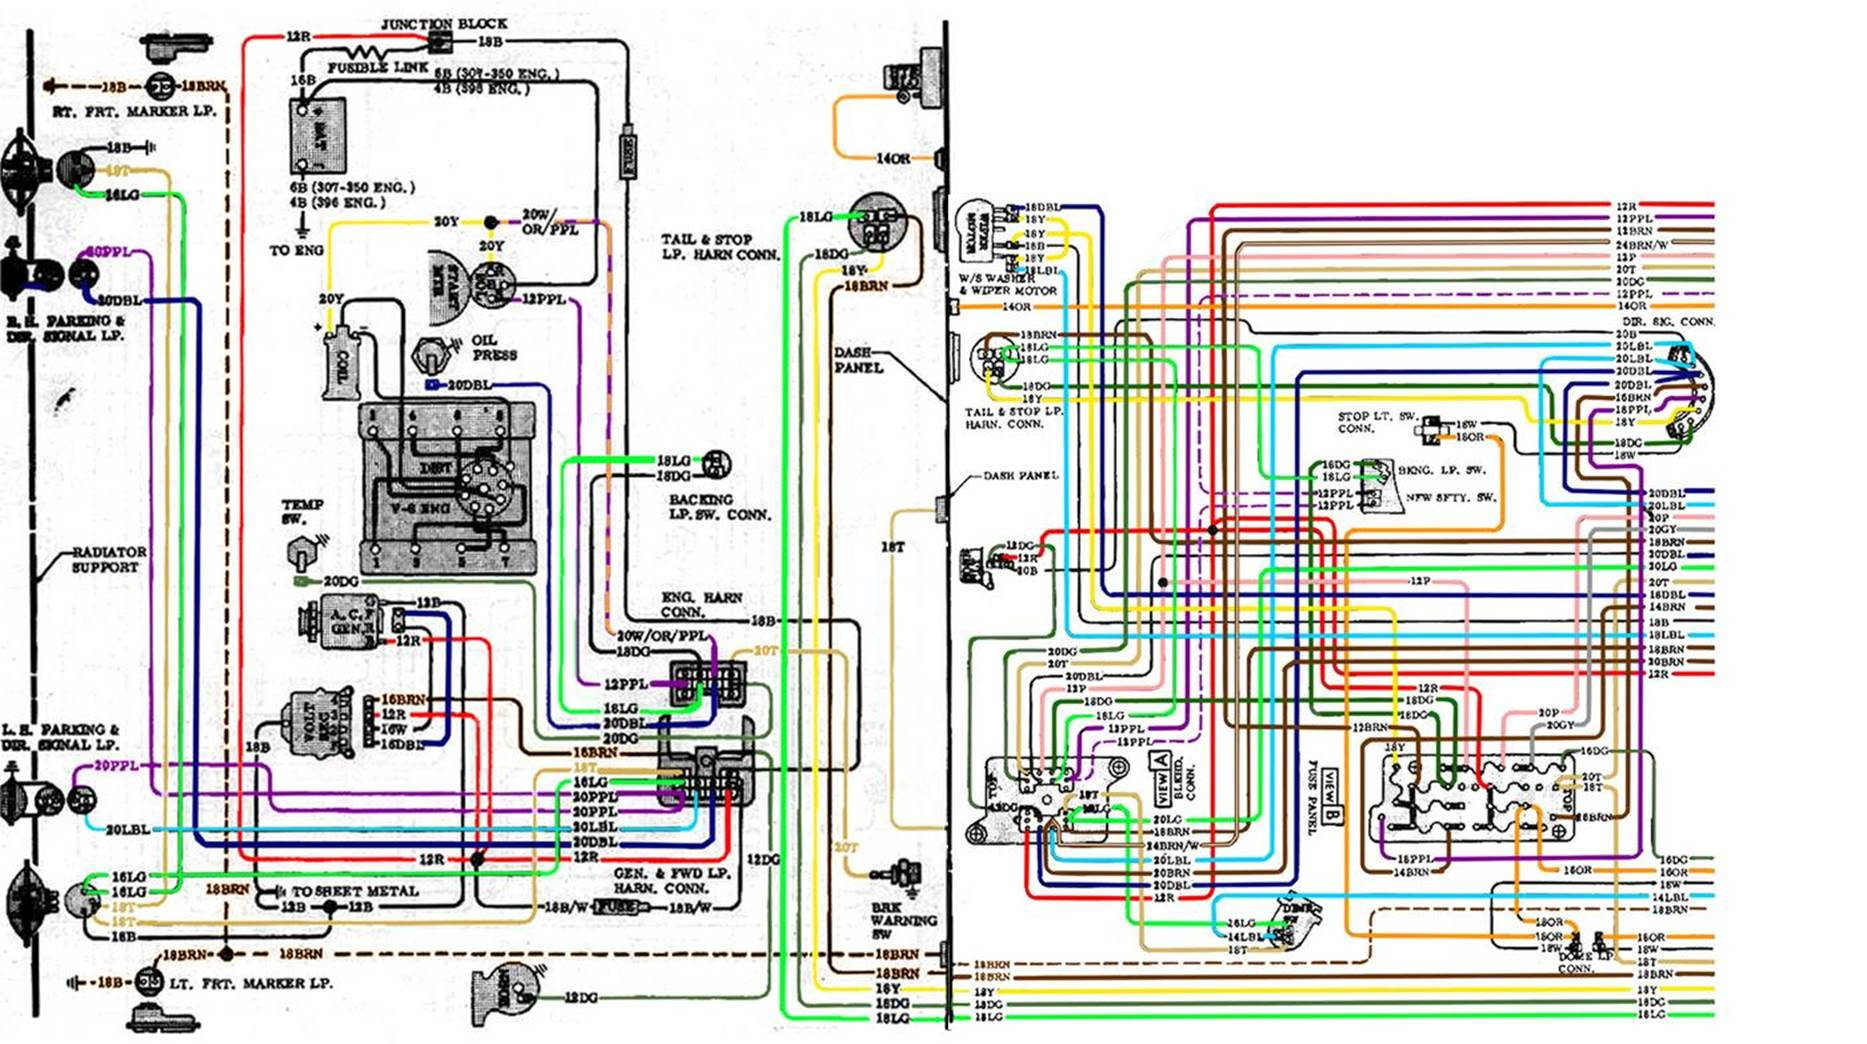 1985 gmc alternator wiring wiring library 1966 gmc wiring diagram 67 72 chevy wiring diagram 1979 chevy alternator wiring diagram 72 chevy wiring diagram